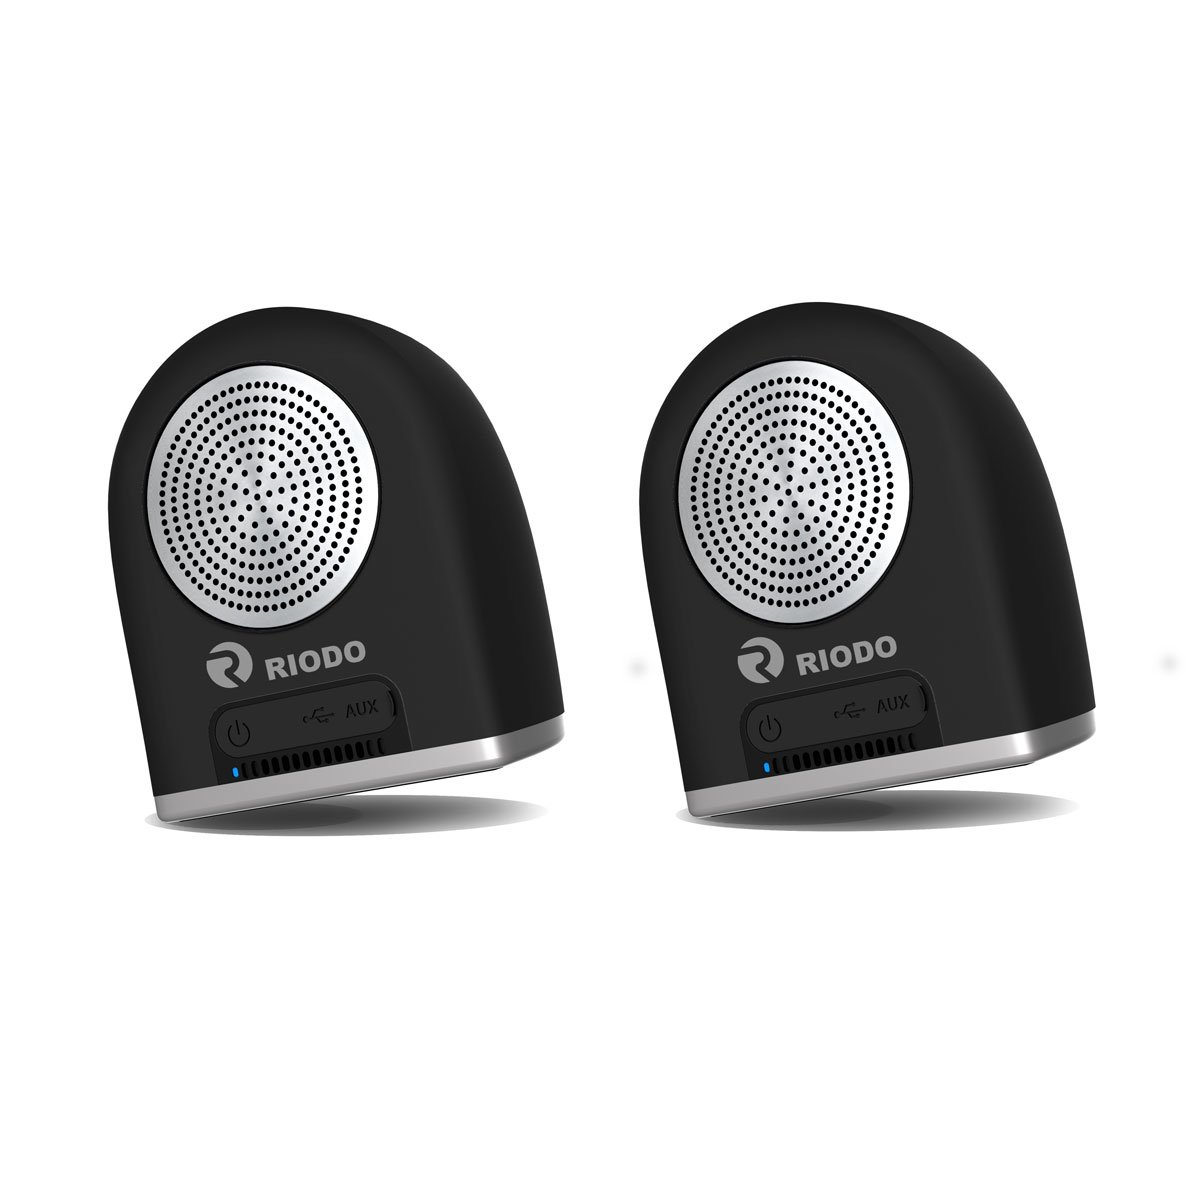 Riodo Portable Bluetooth Speakers, Magnetic True Wireless Stereo Speaker V4.2 Dual TWS Audio for Phones Tablets PC iPhone Android